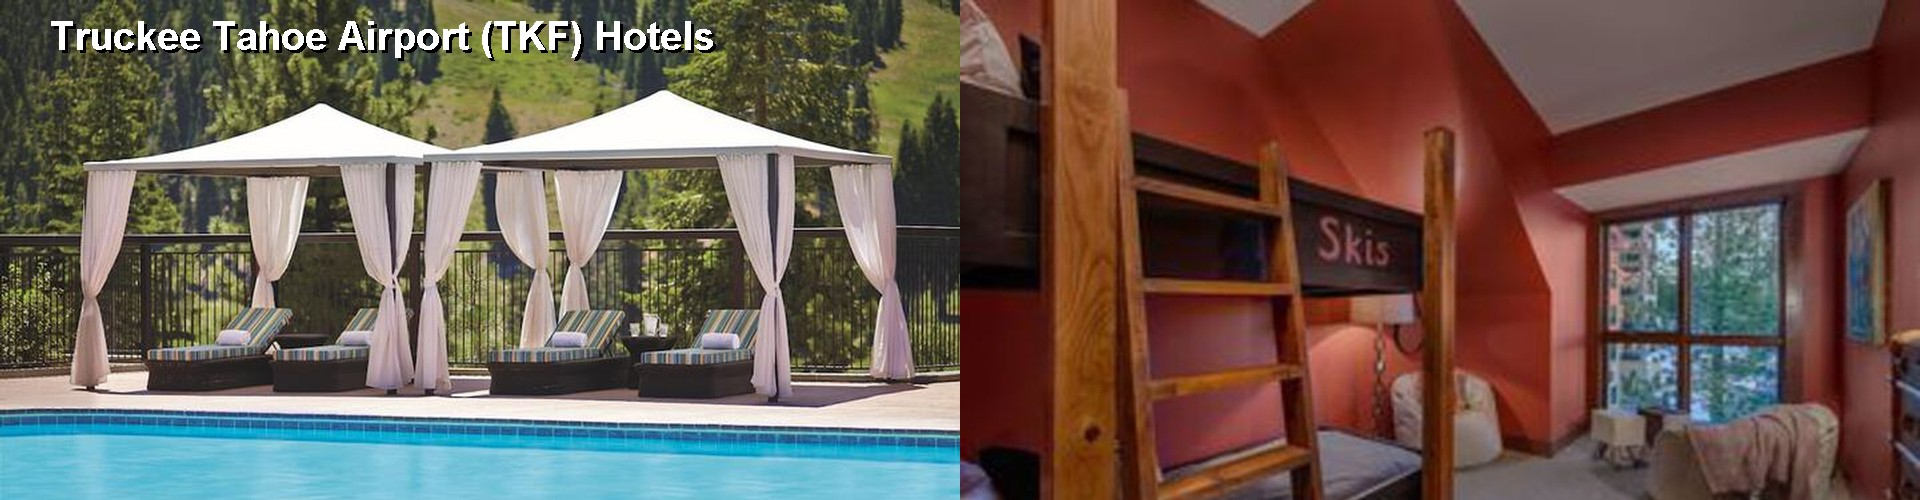 5 Best Hotels near Truckee Tahoe Airport (TKF)